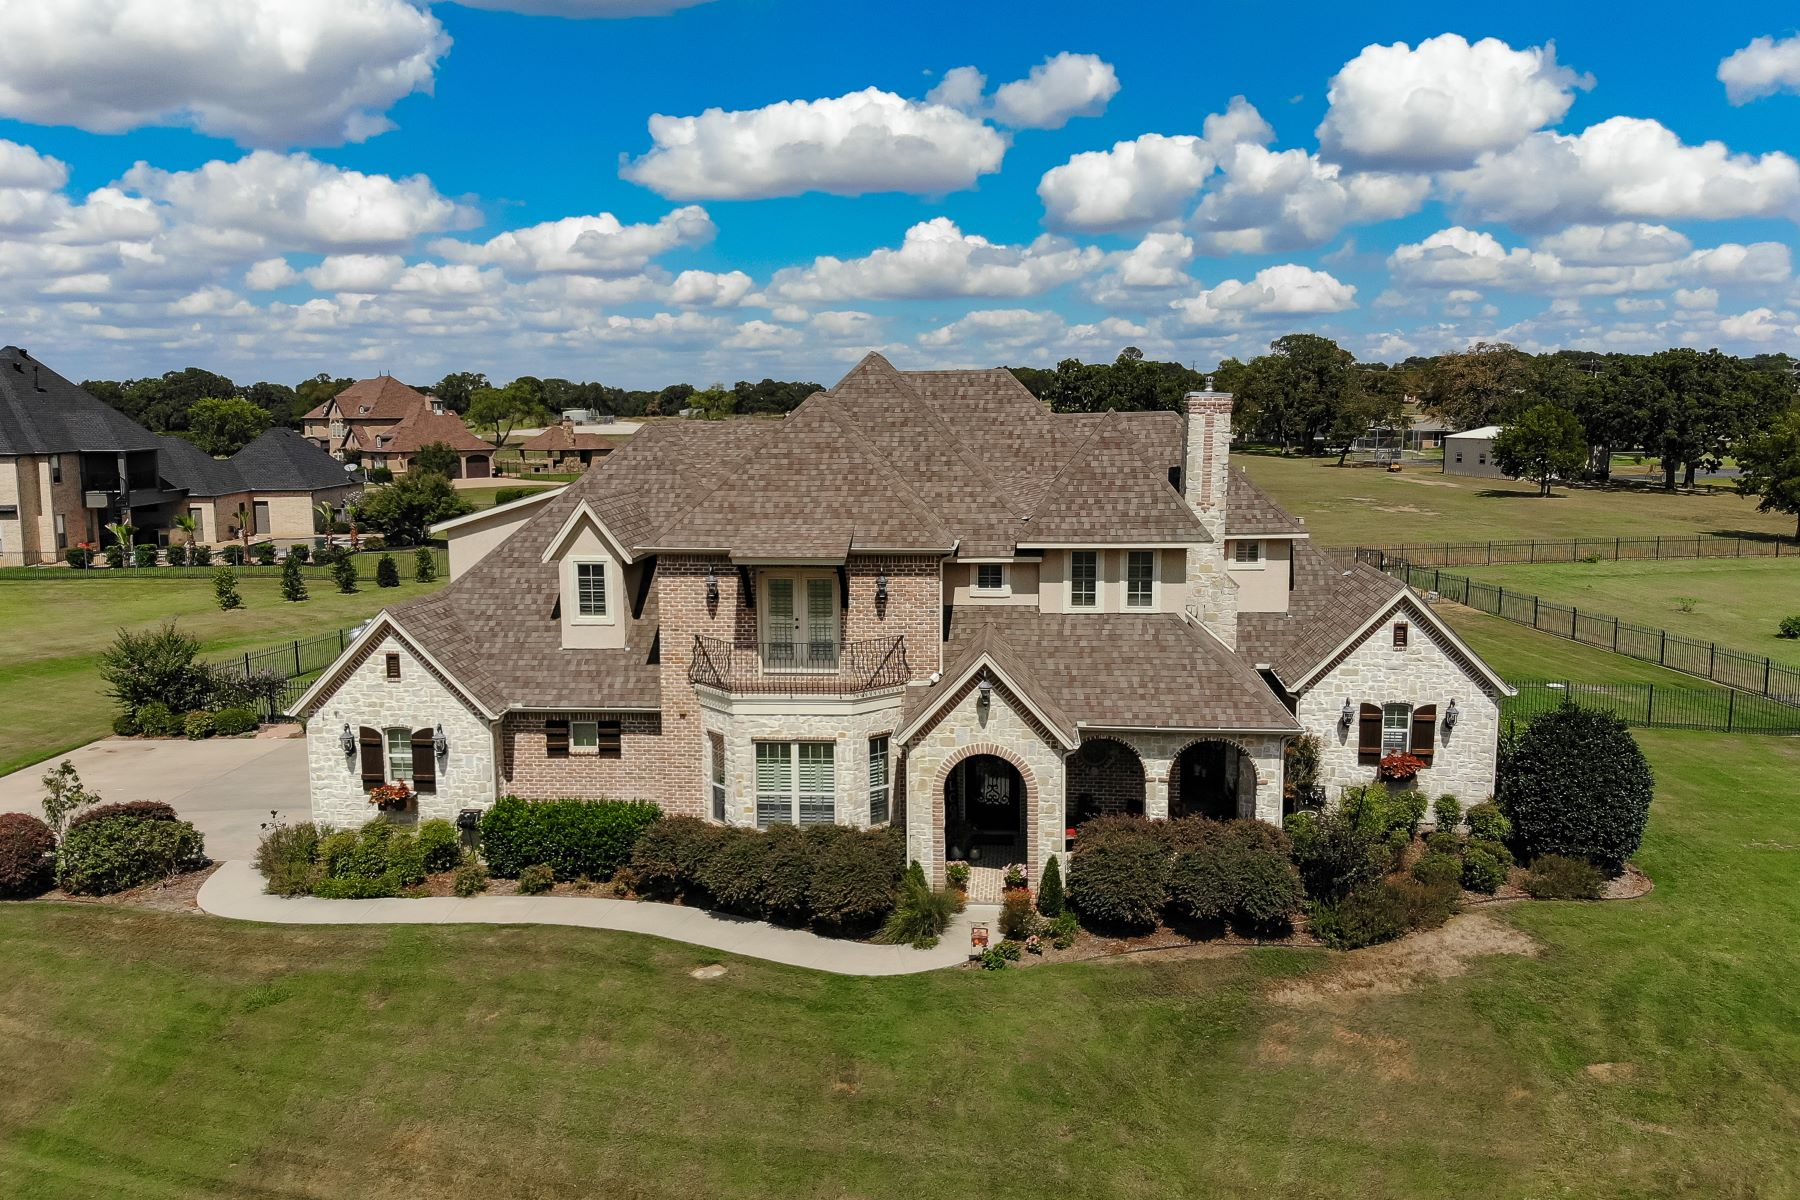 Single Family Homes for Sale at 1701 Taylor Bridge Court Burleson, Texas 76028 United States